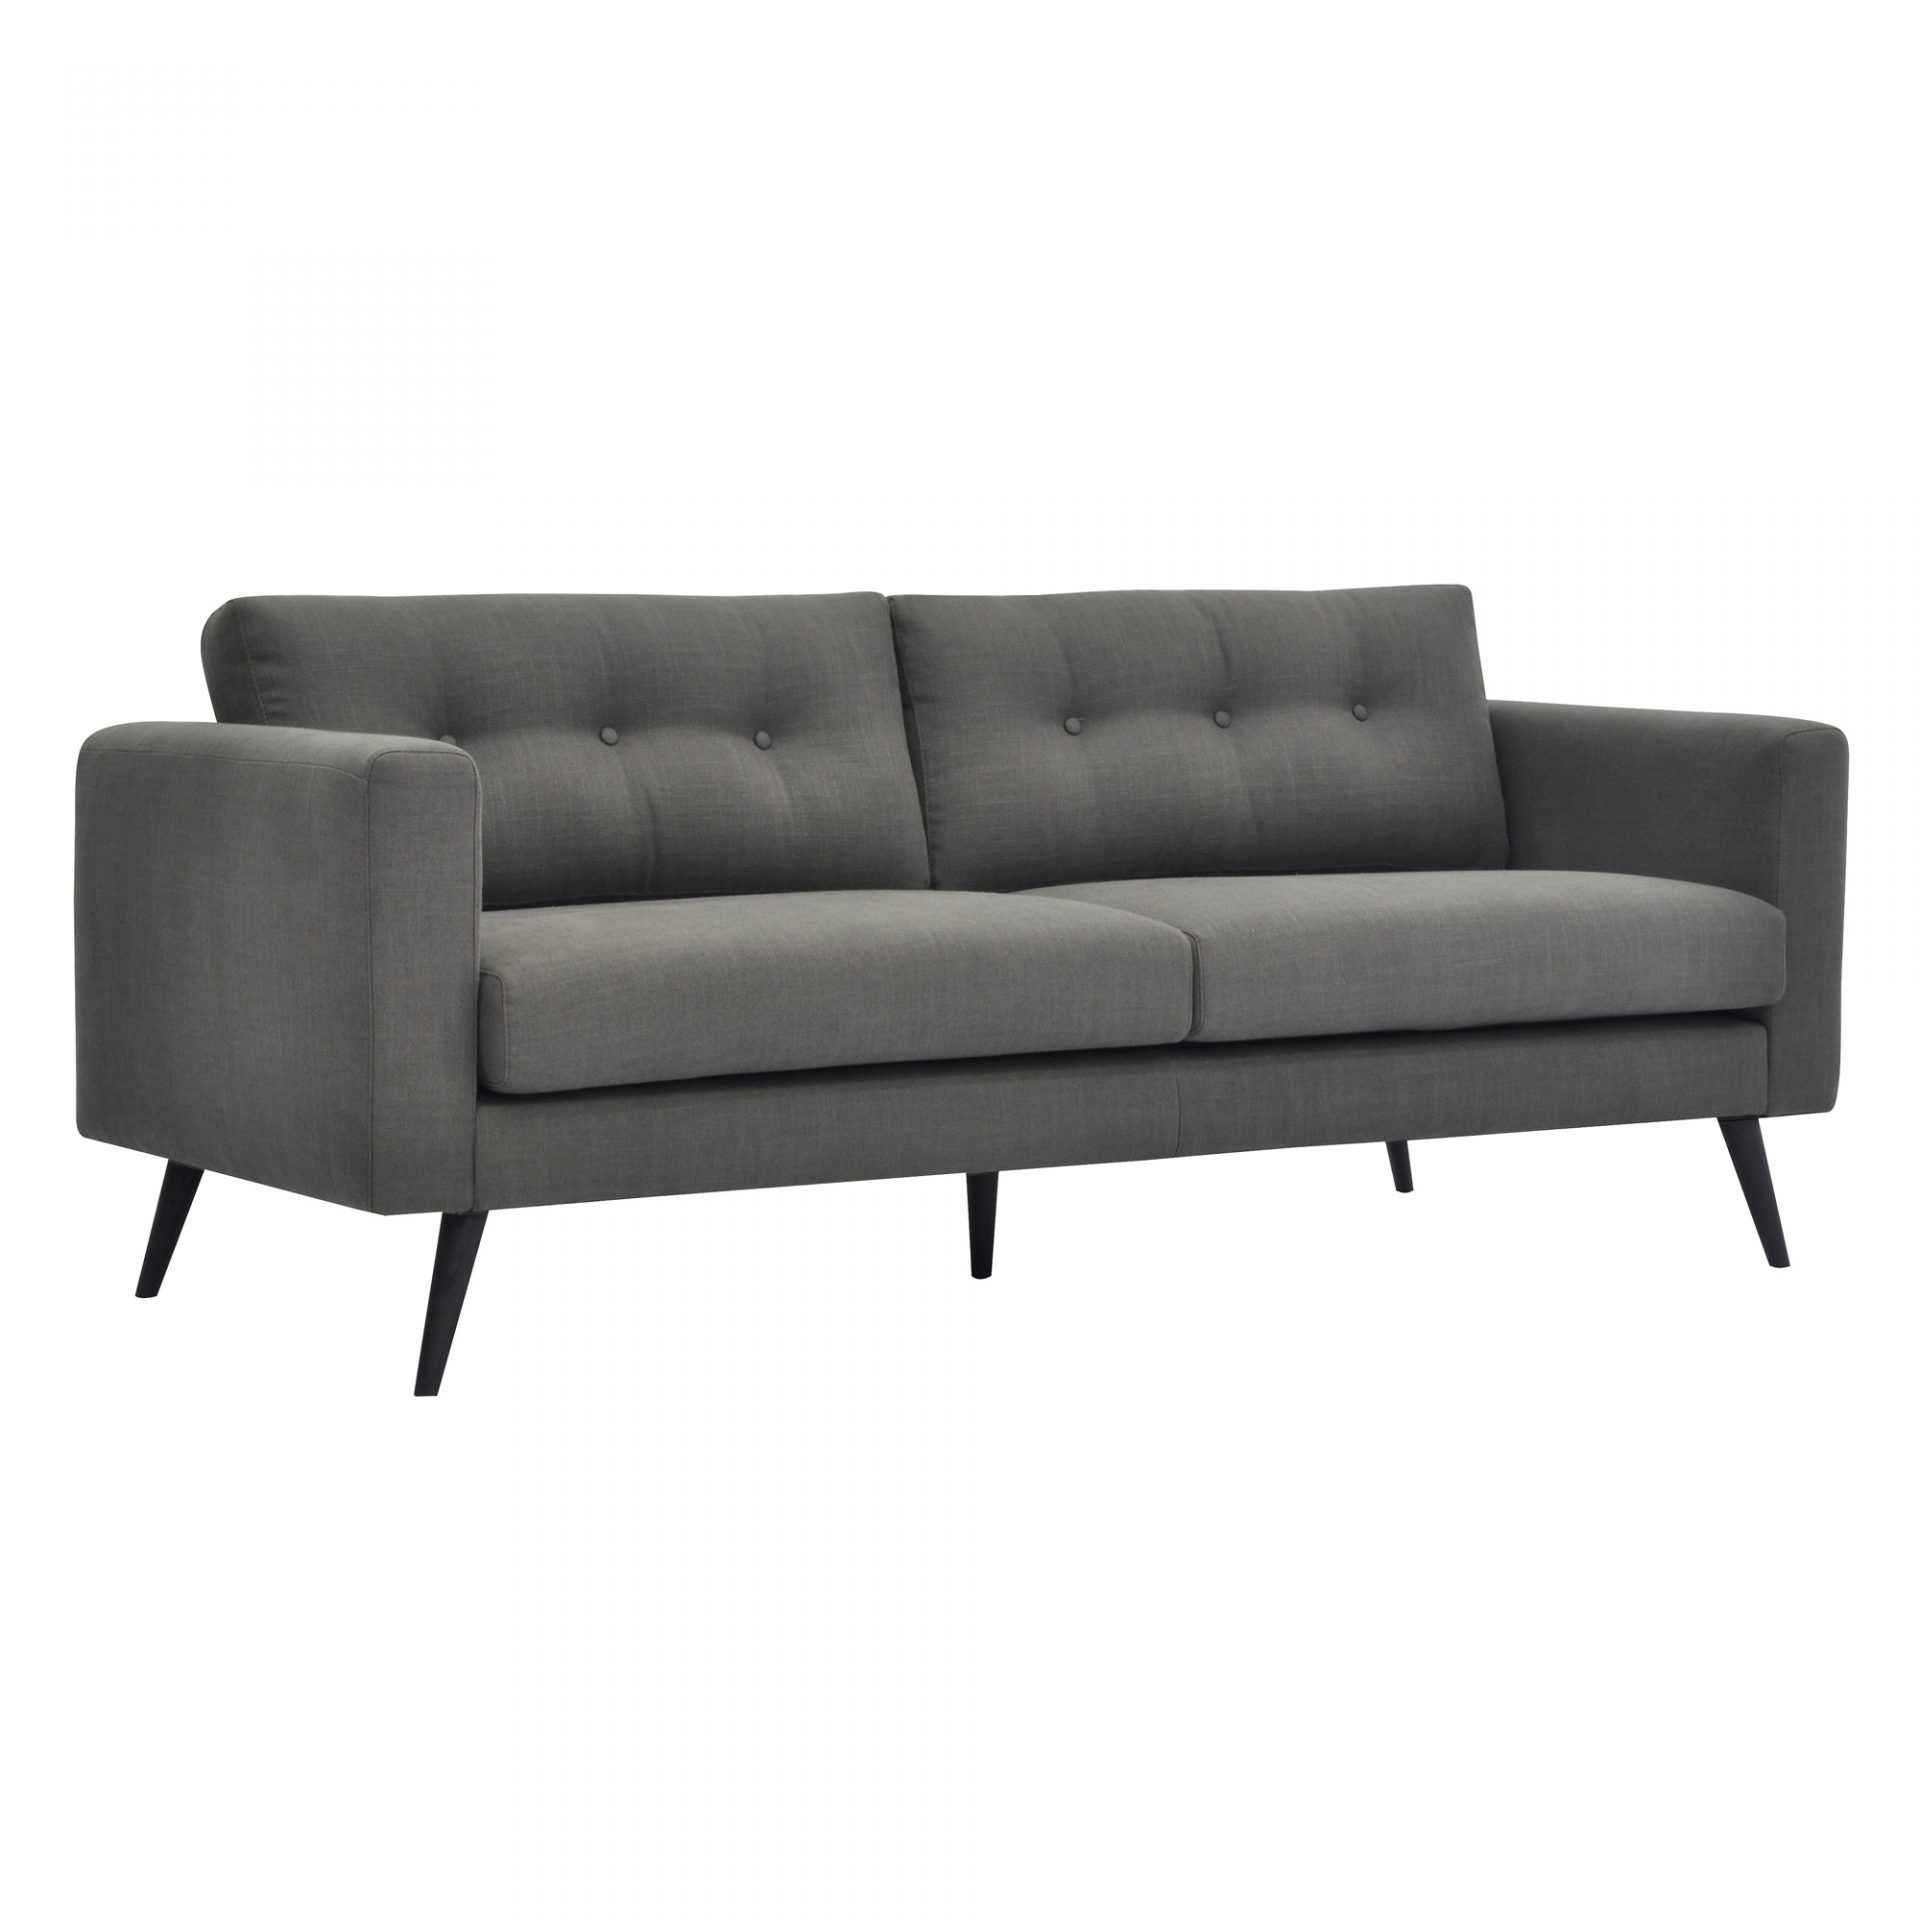 Clean lines and peg legs make this sofa a mid century dream but its updated design makes it perfect for a modern home as well